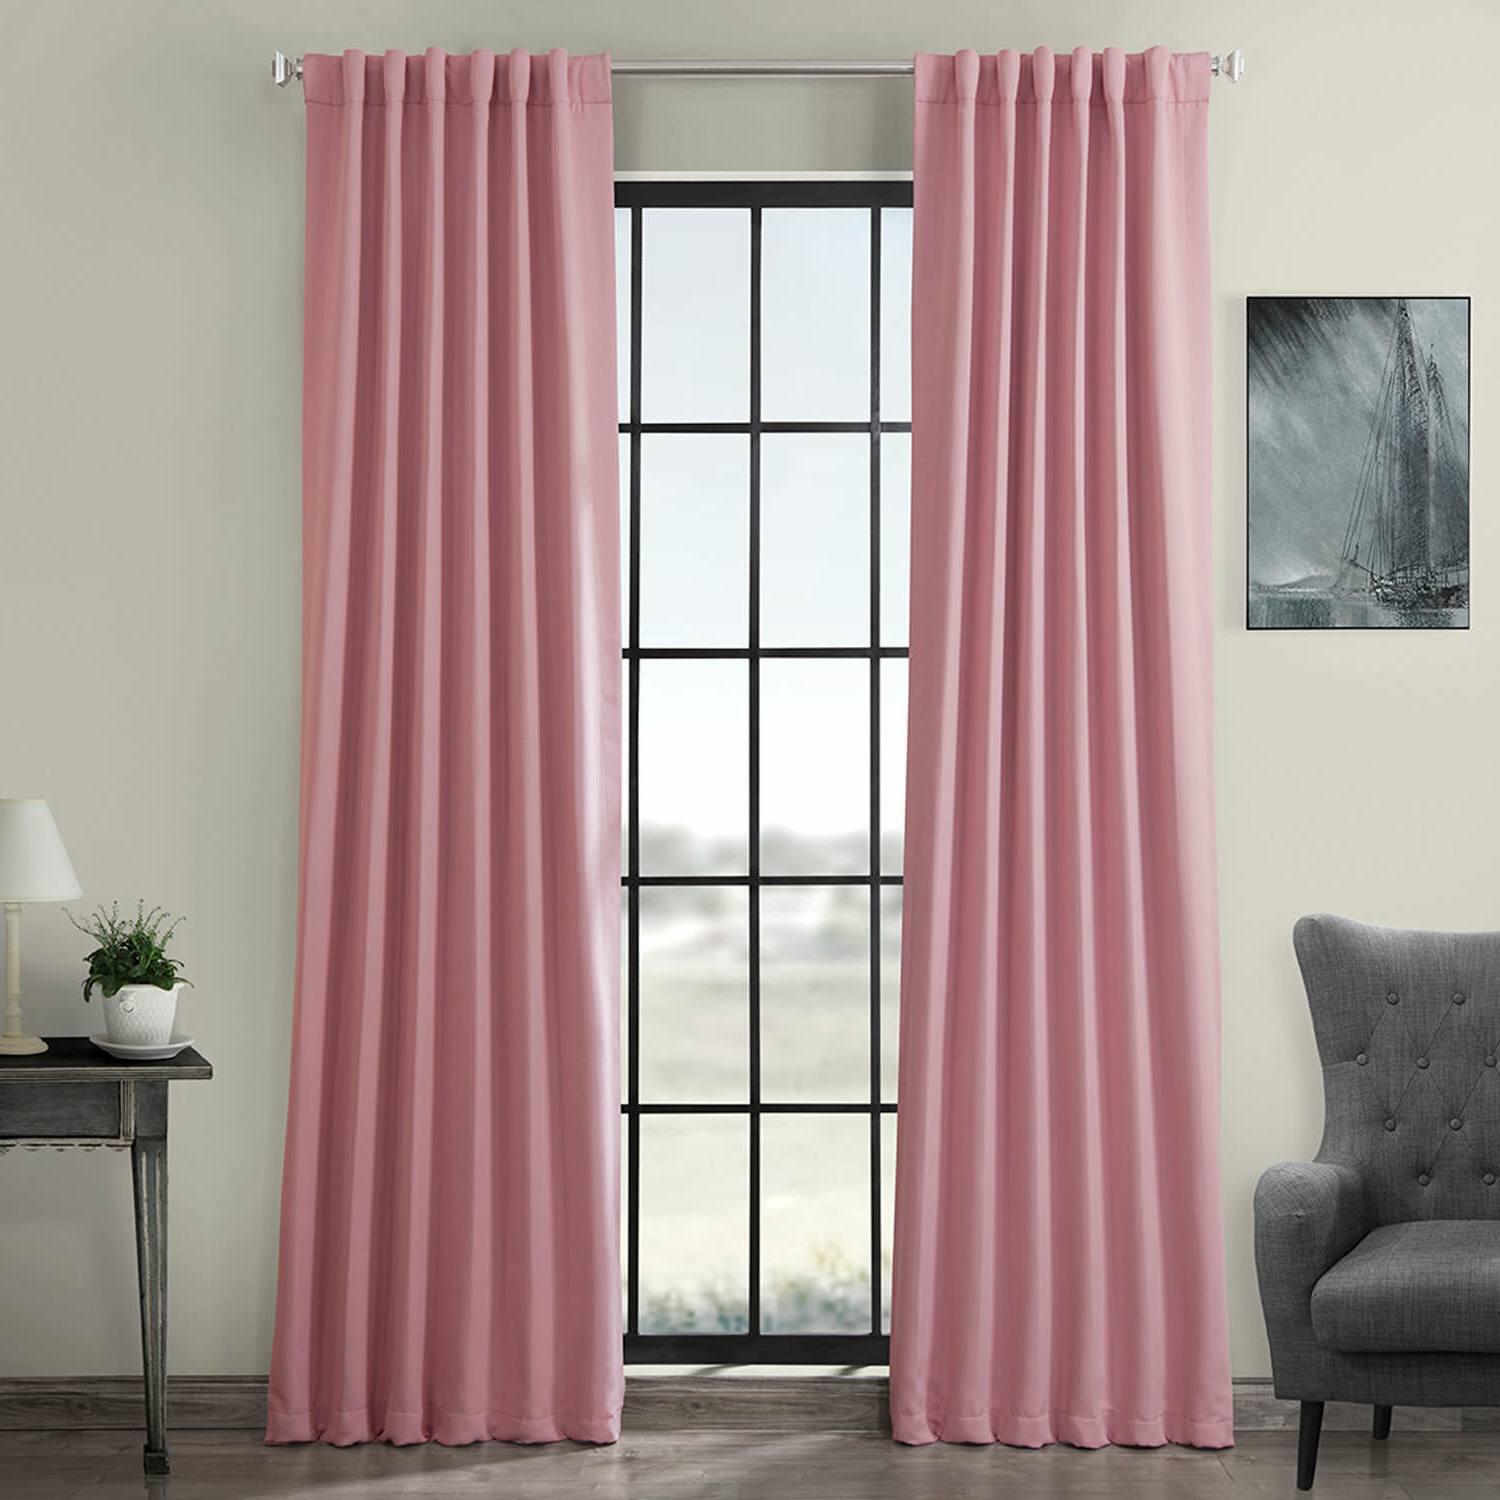 Thermal Rod Pocket Blackout Curtain Panel Pairs Throughout Well Known Destinie Indoor Solid Color Blackout Curtain Rod Pocket Panel Pair (View 14 of 20)